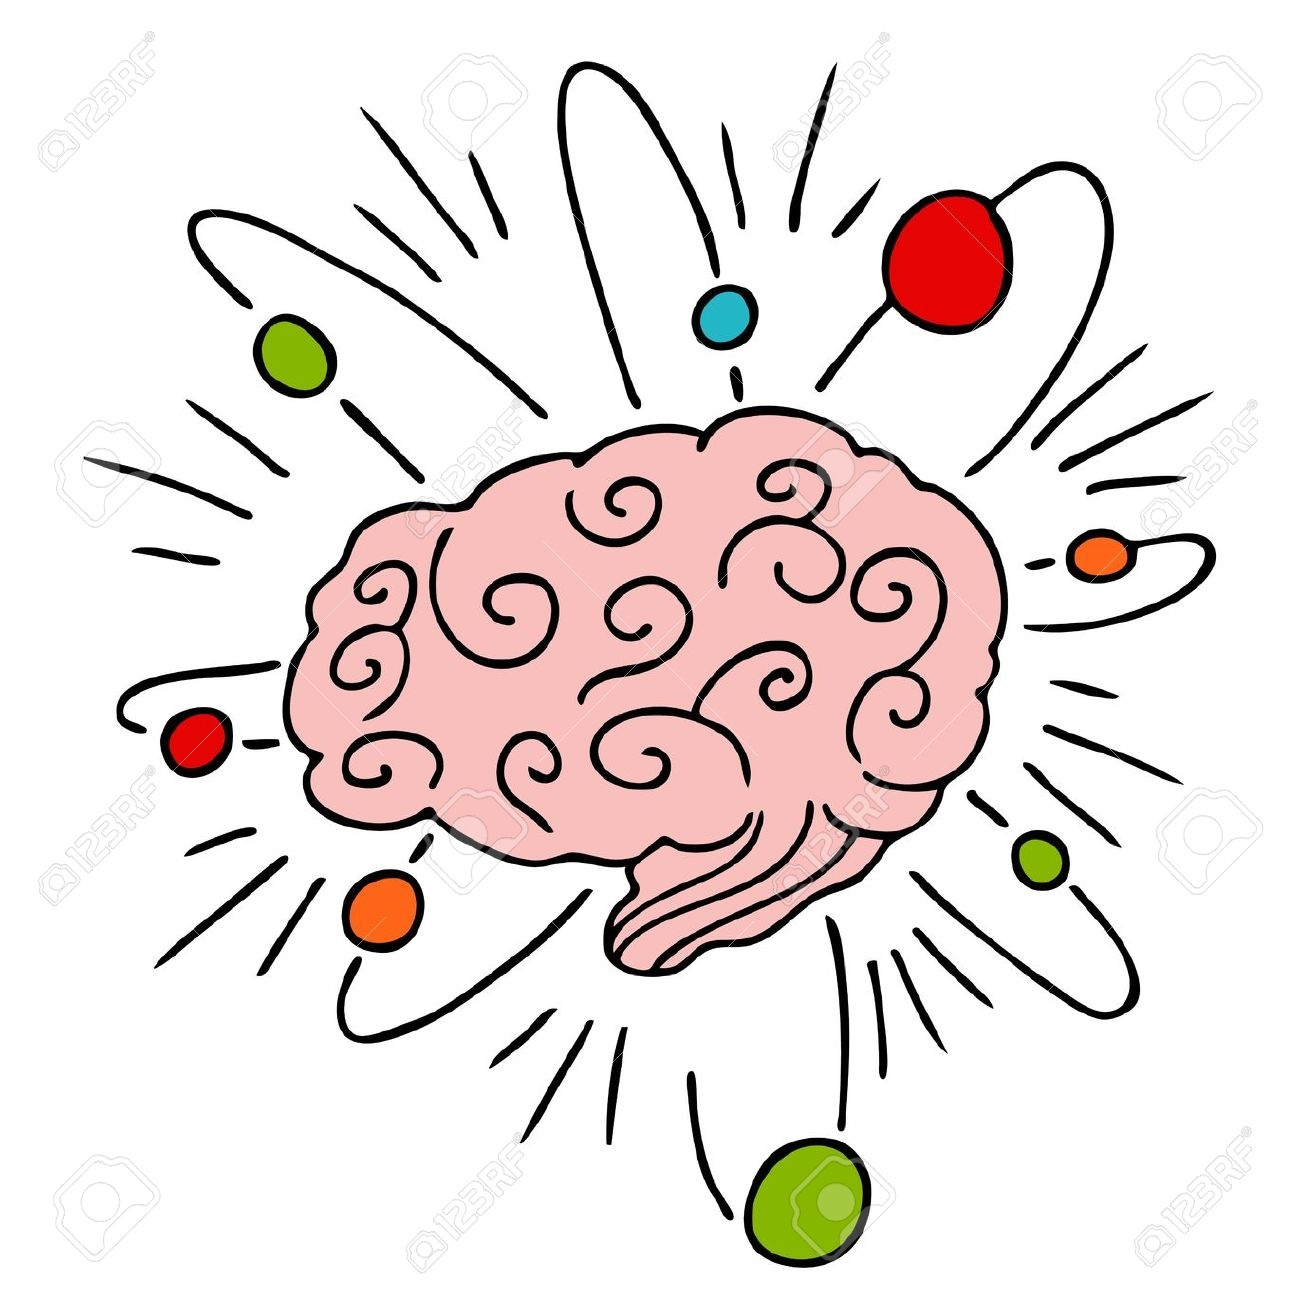 Knowledge brain clipart.